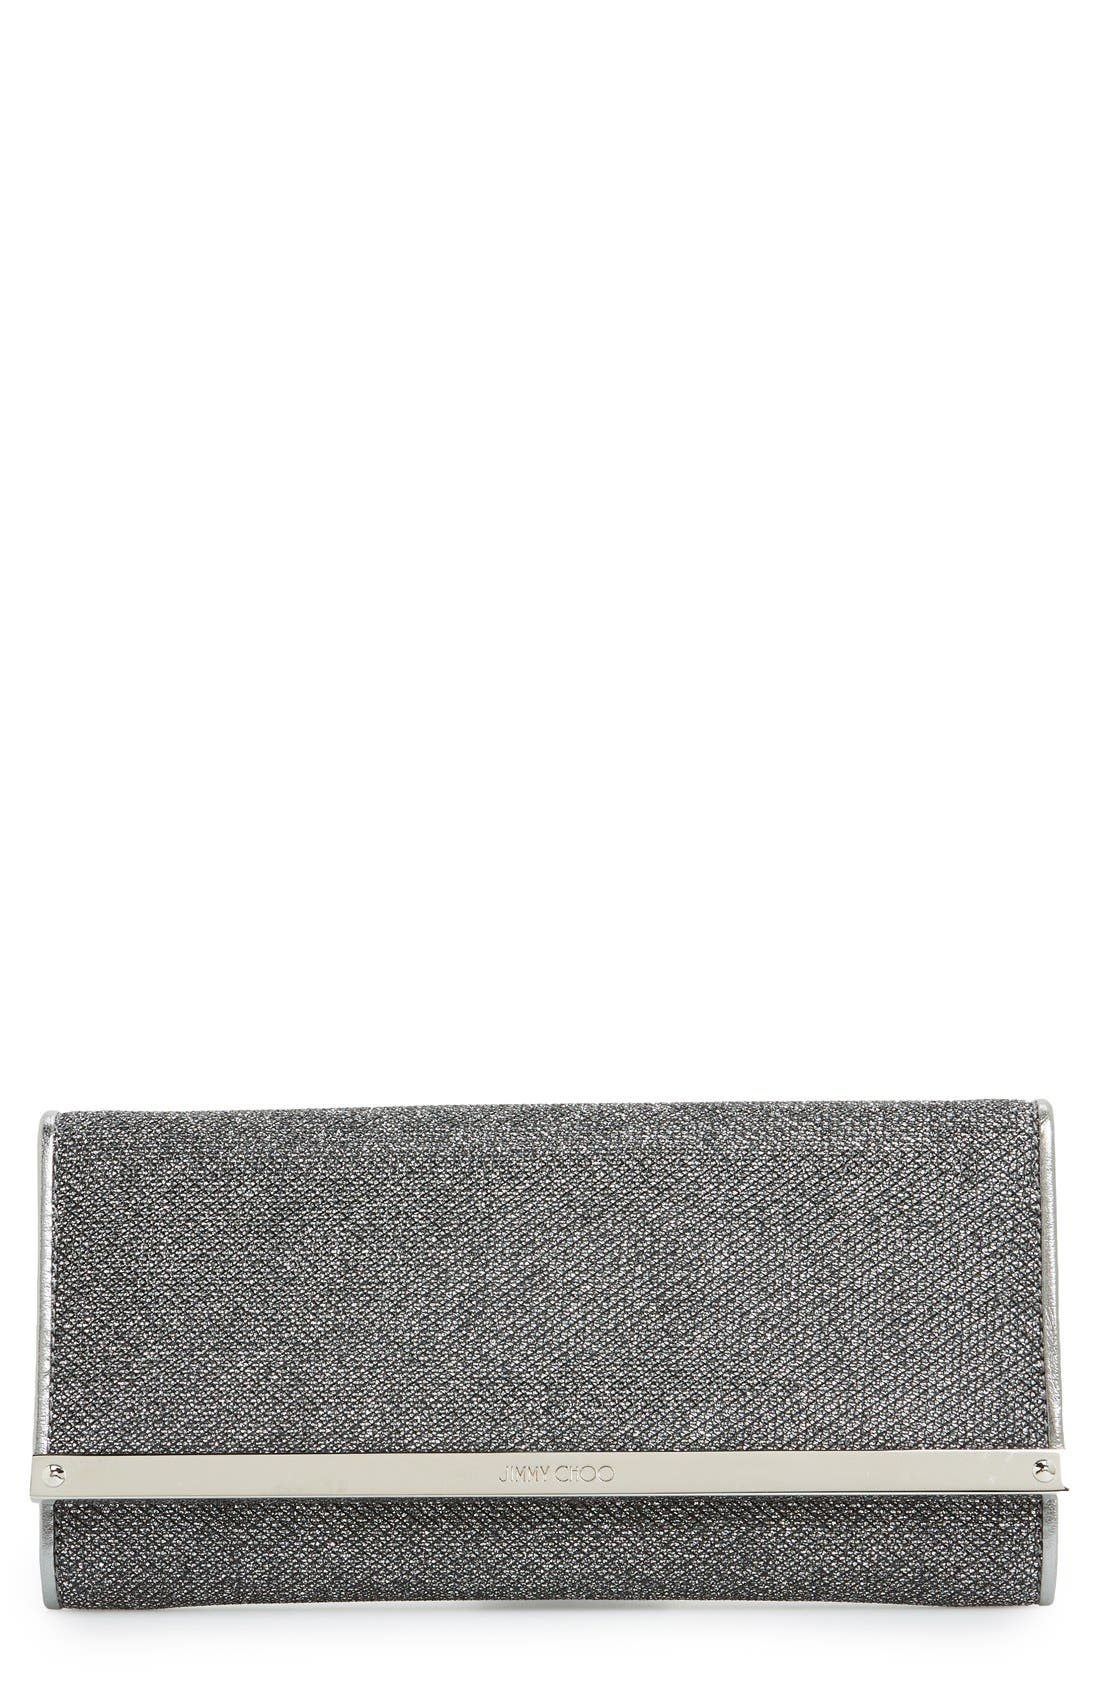 JIMMY CHOO 'Milla' Glitter Lamé Wallet on a